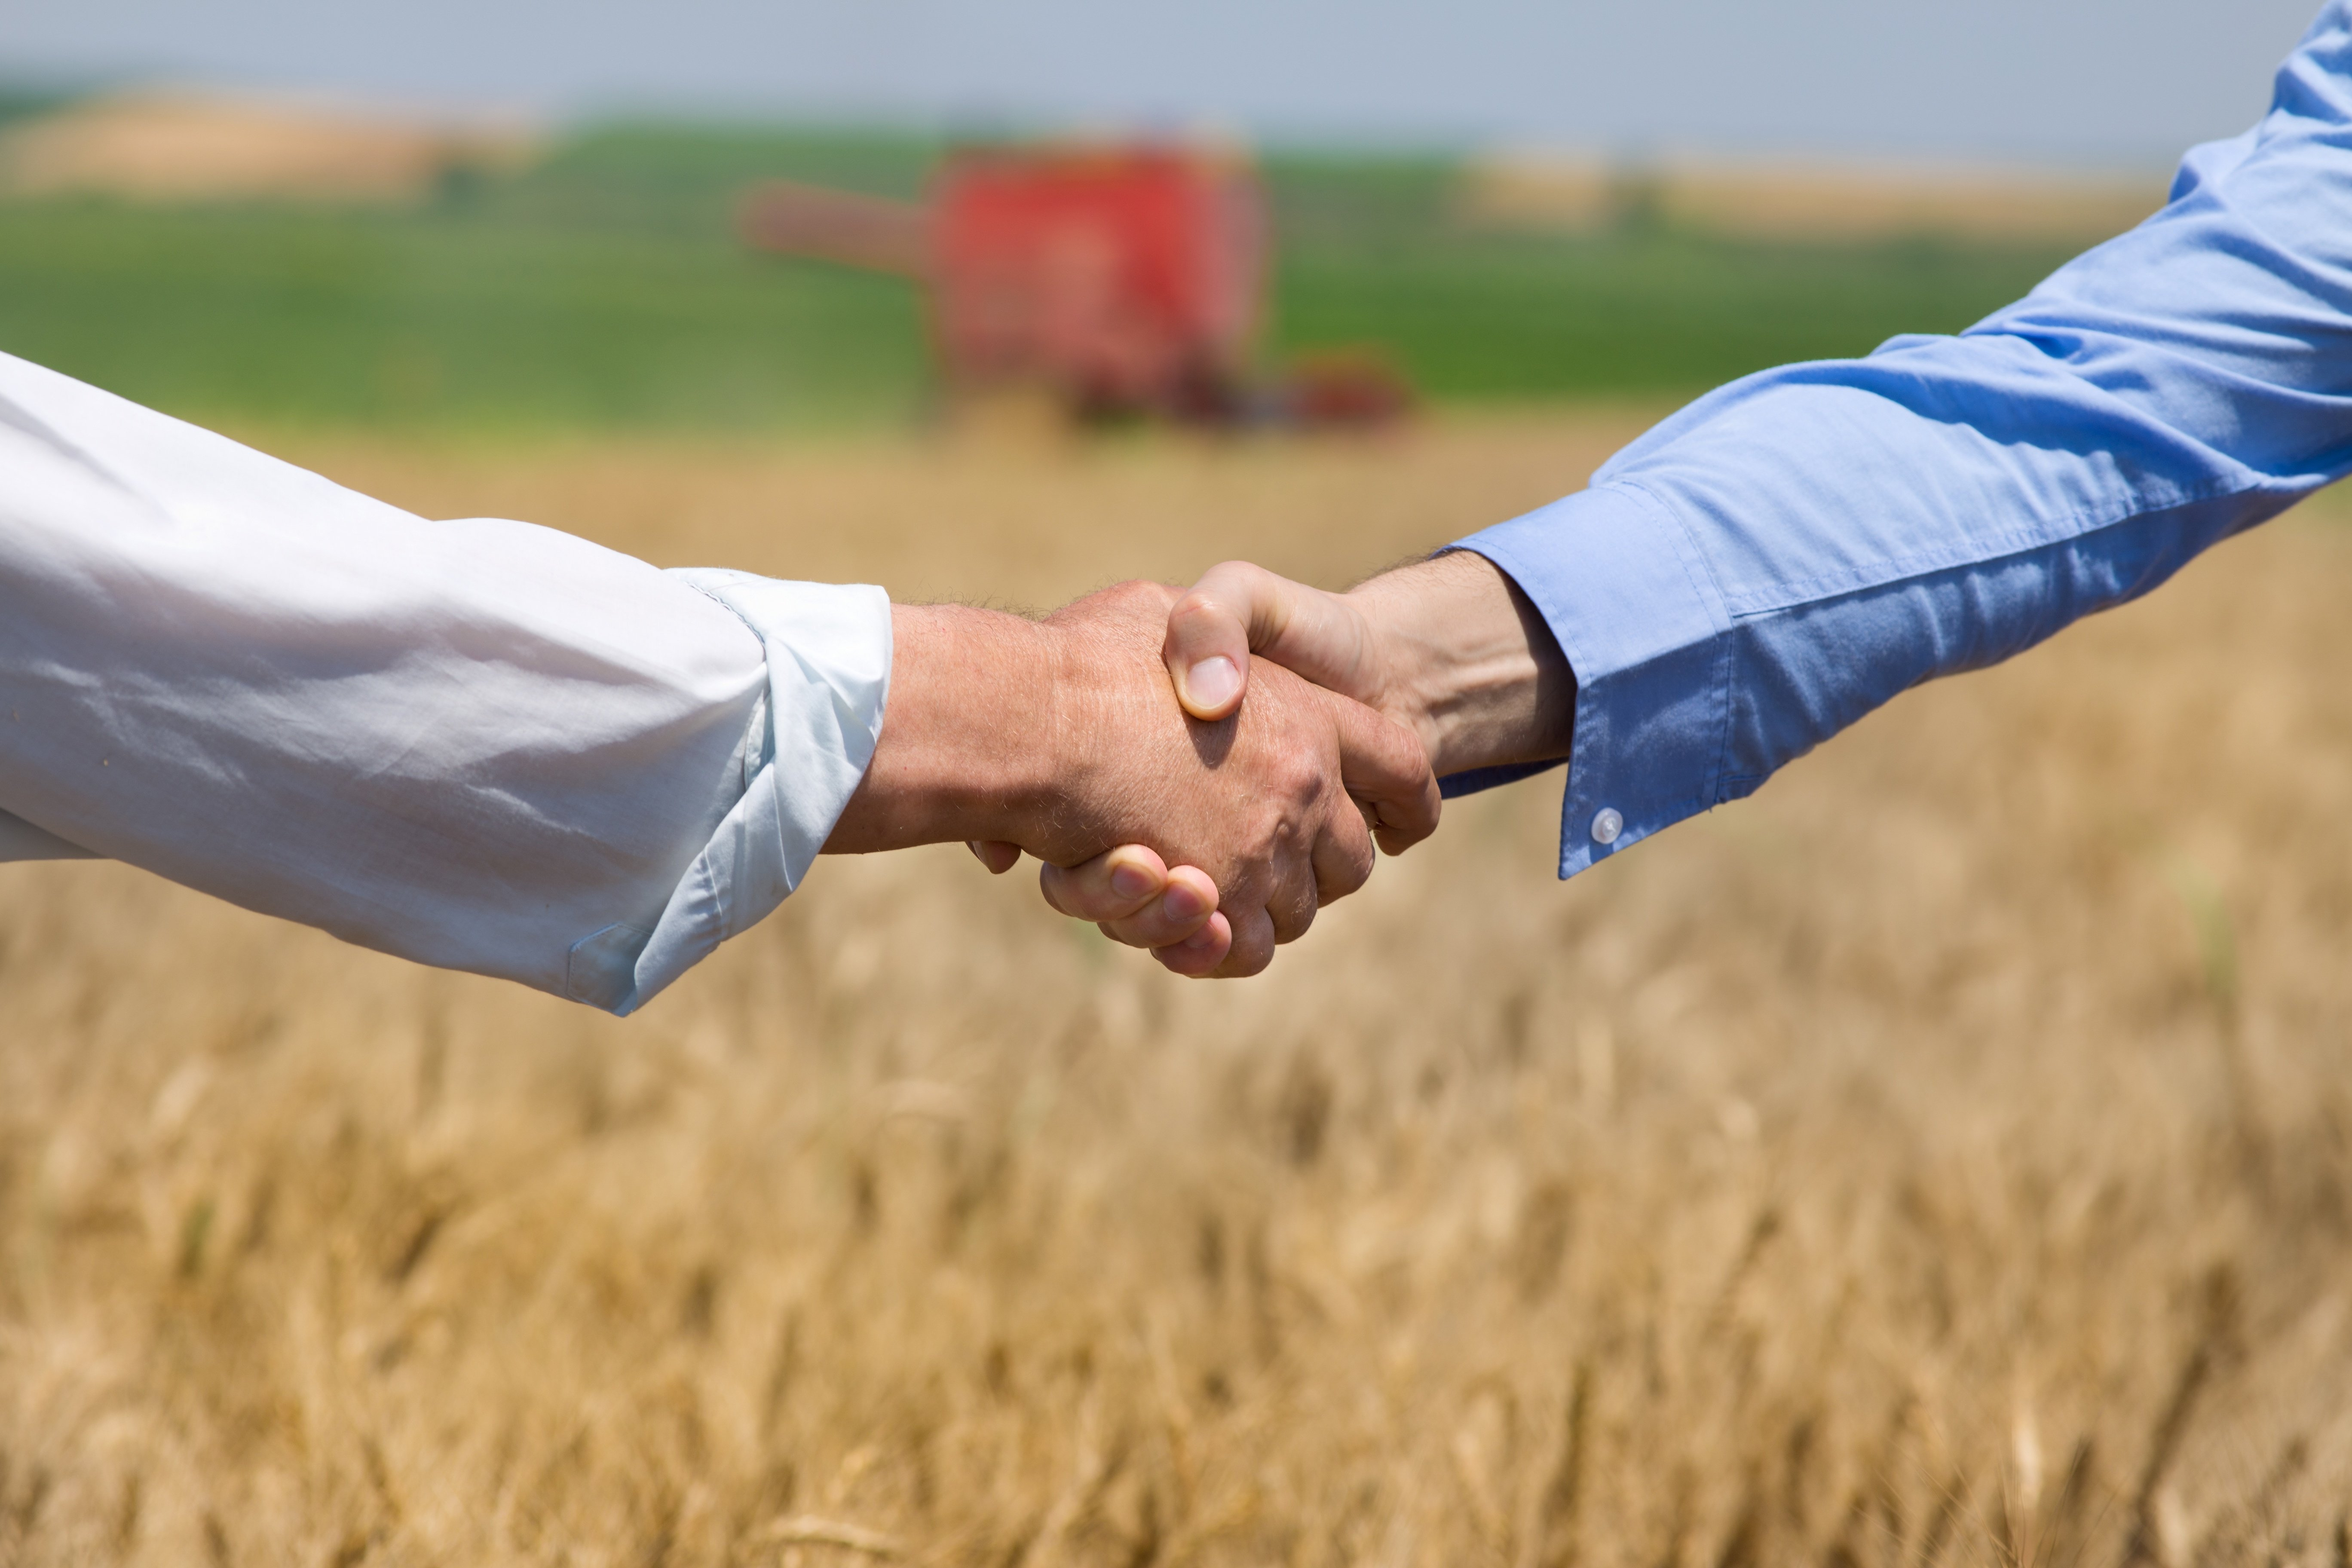 How the Land Buying Process Works from Offer to Close